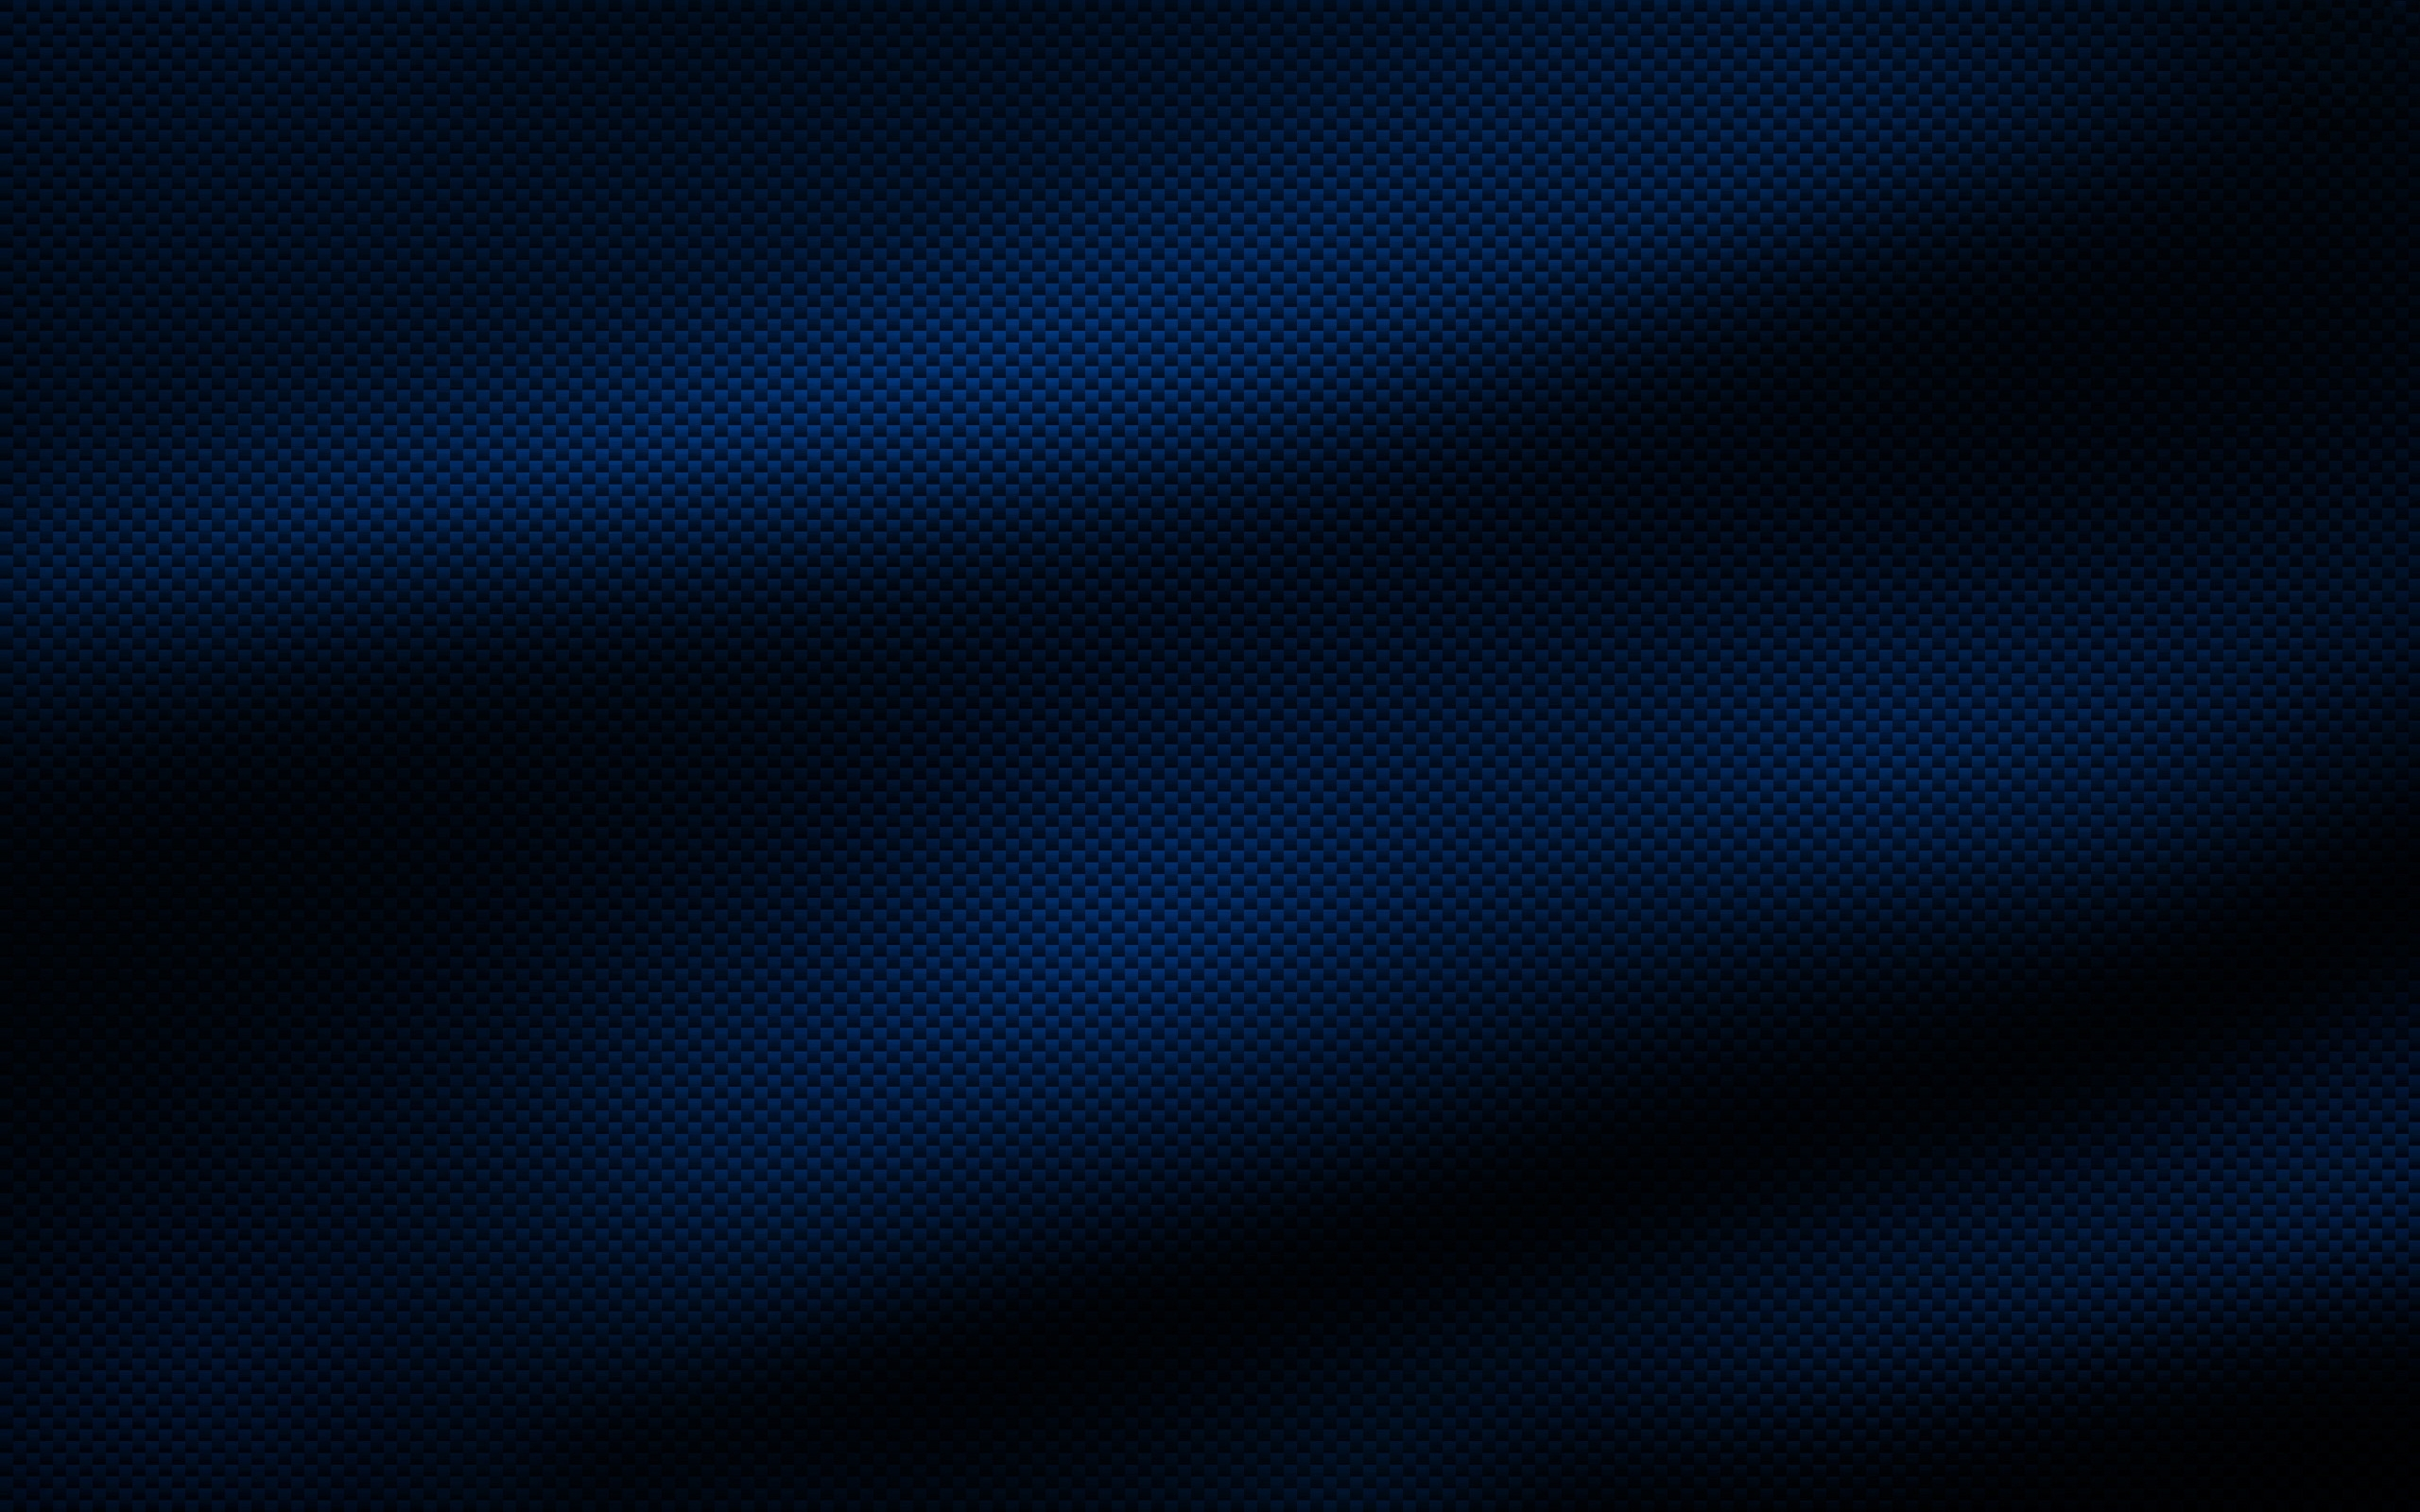 blue carbon fiber wallpaper 41563 2560x1600 px ~ hdwallsource